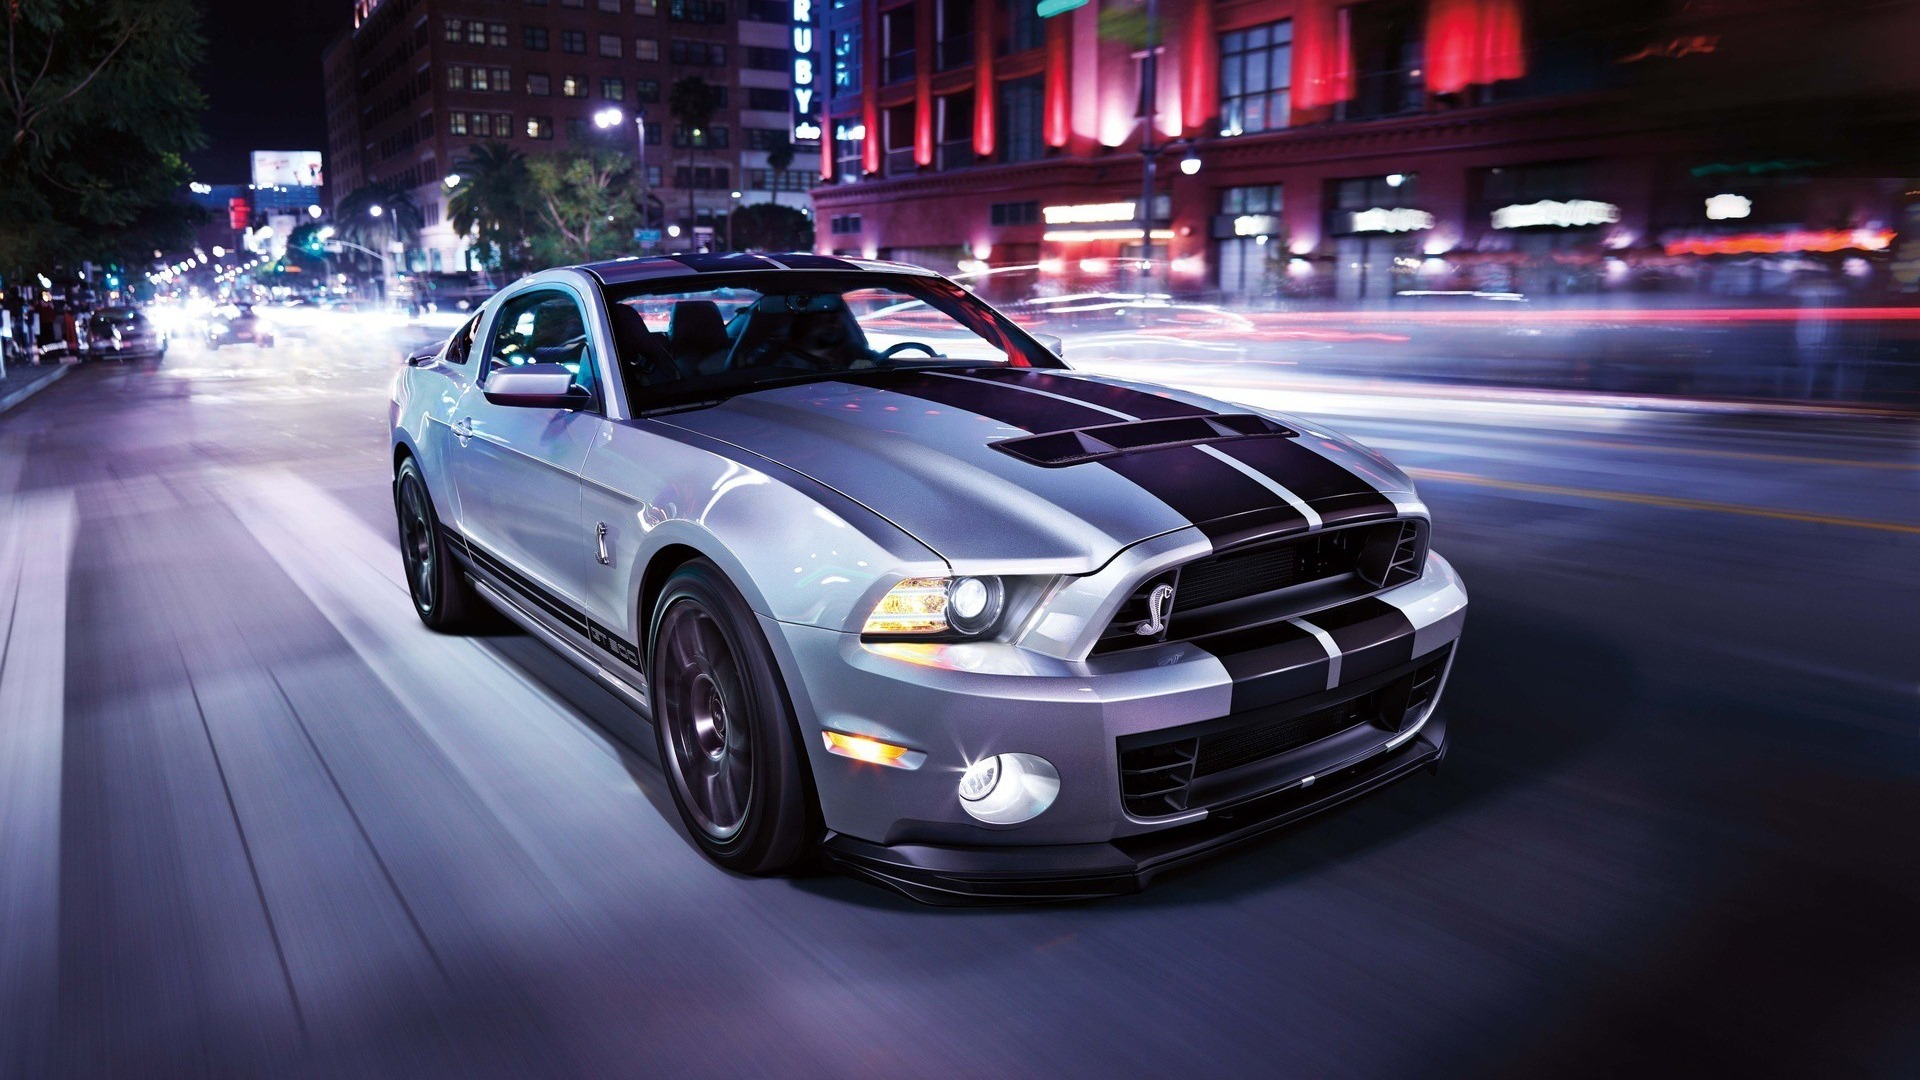 desktop wallpaper for desktop backgrounds 2015 backgrounds best car 1920x1080